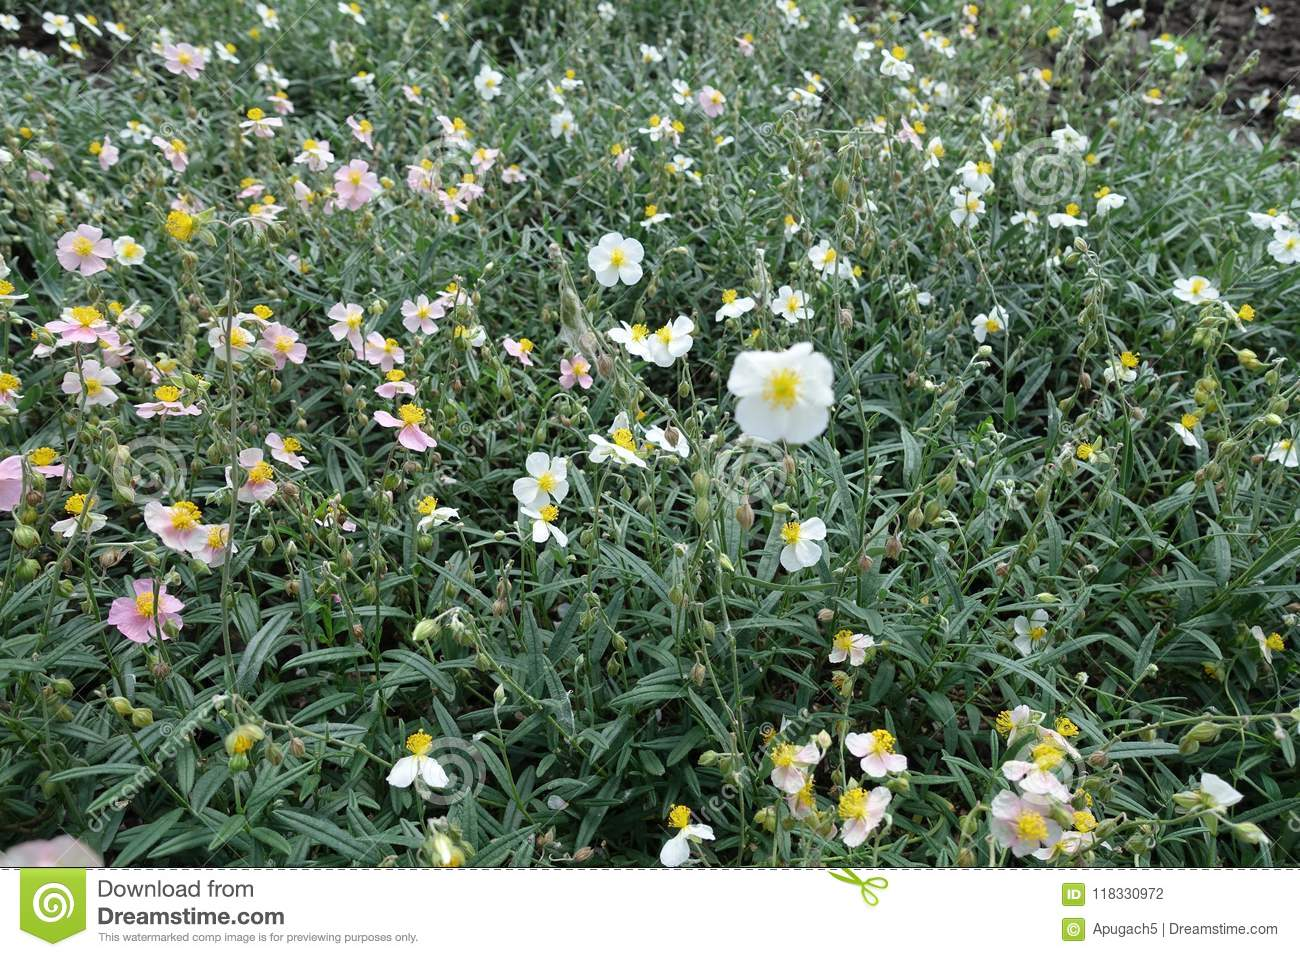 White and pink flowers of Helianthemum